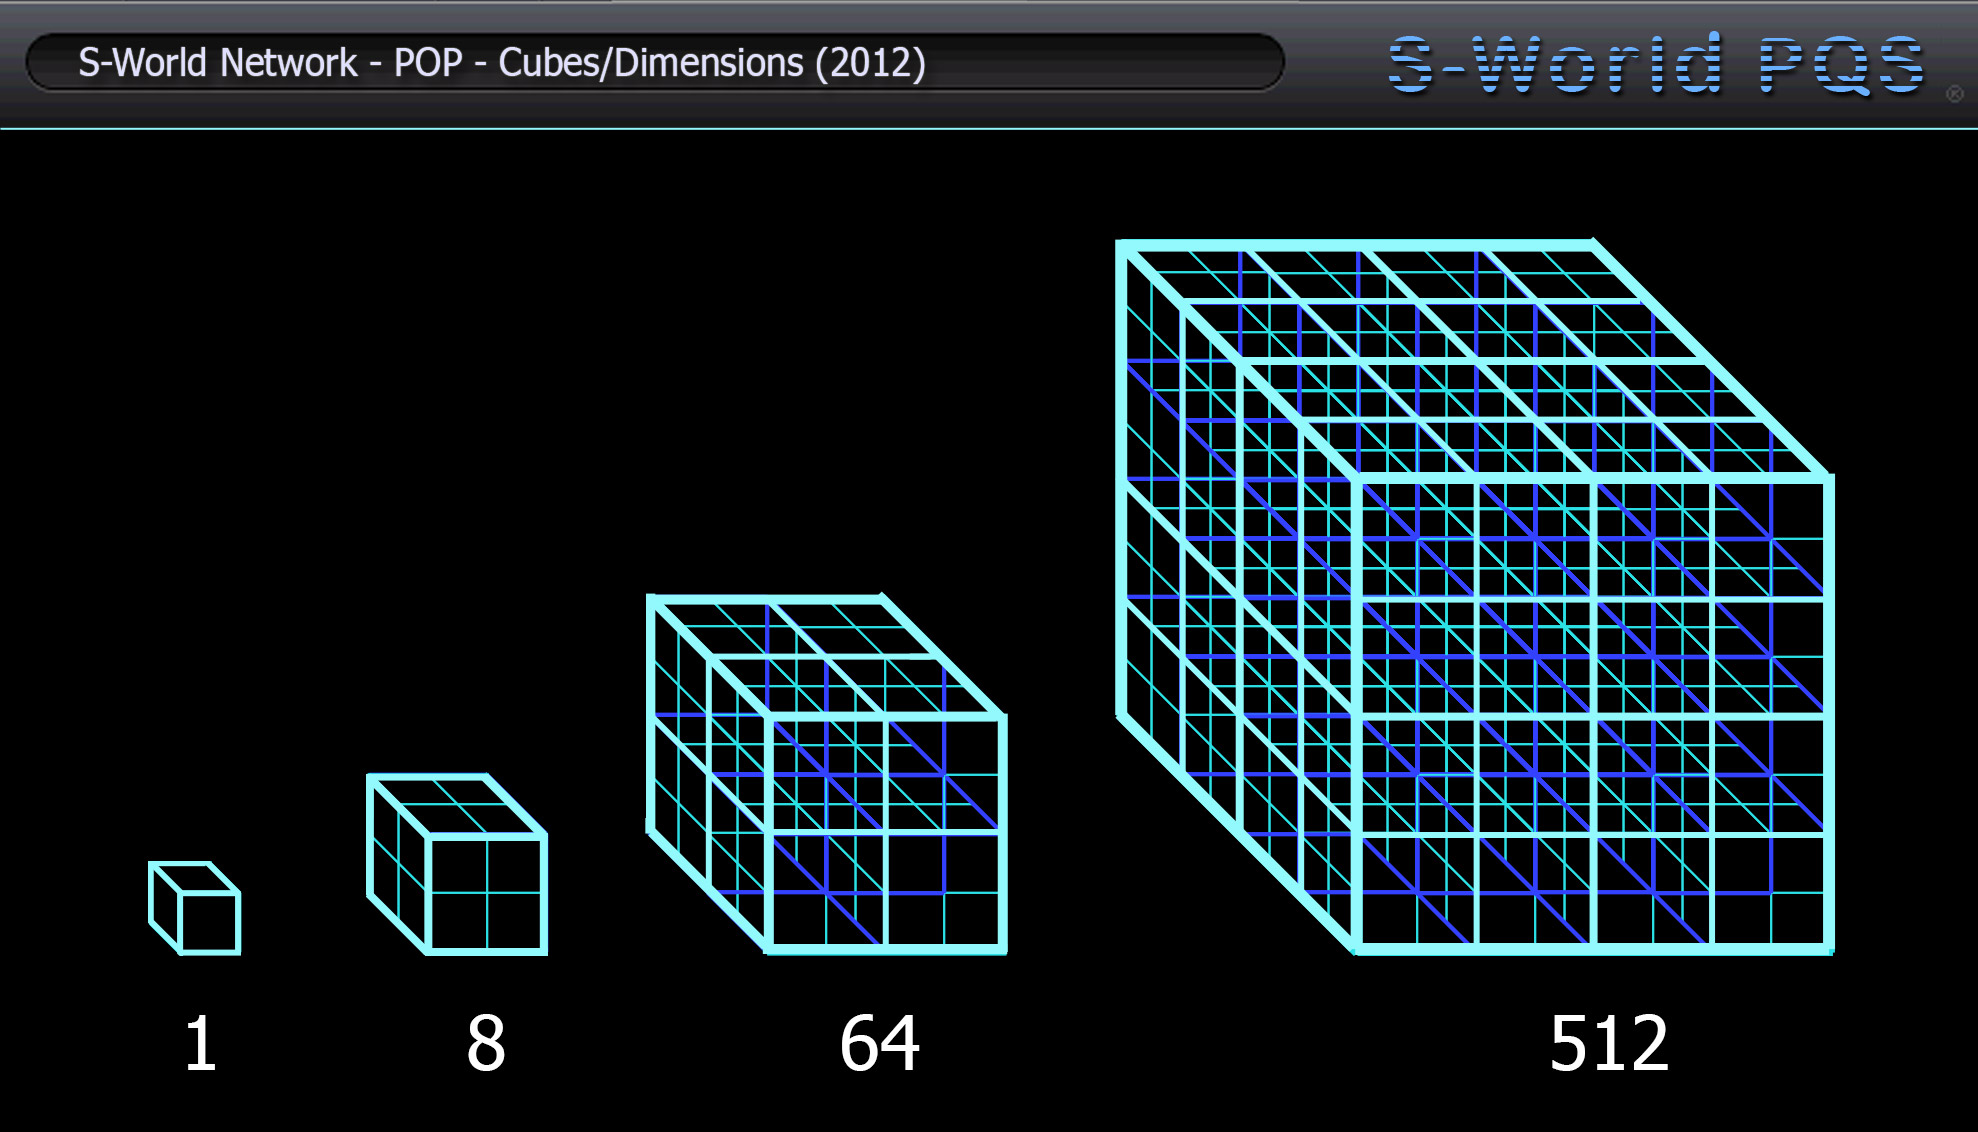 S-World Network - POP - Cubes/Dimensions (2012)